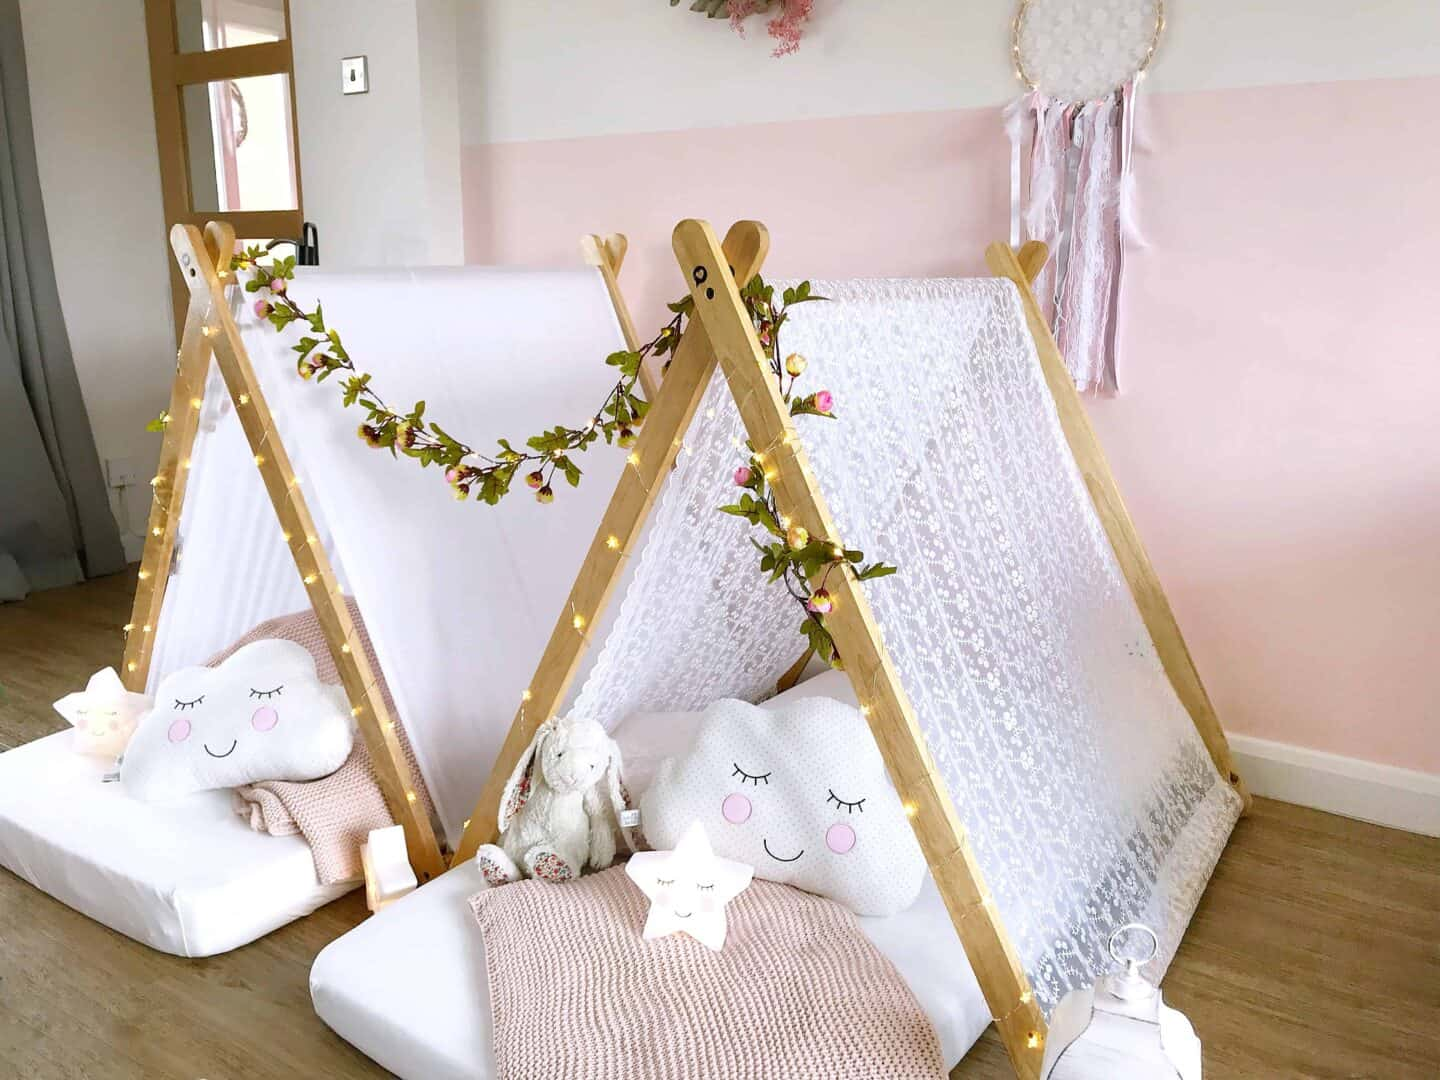 A Magical Sleepover with Teepee Parties